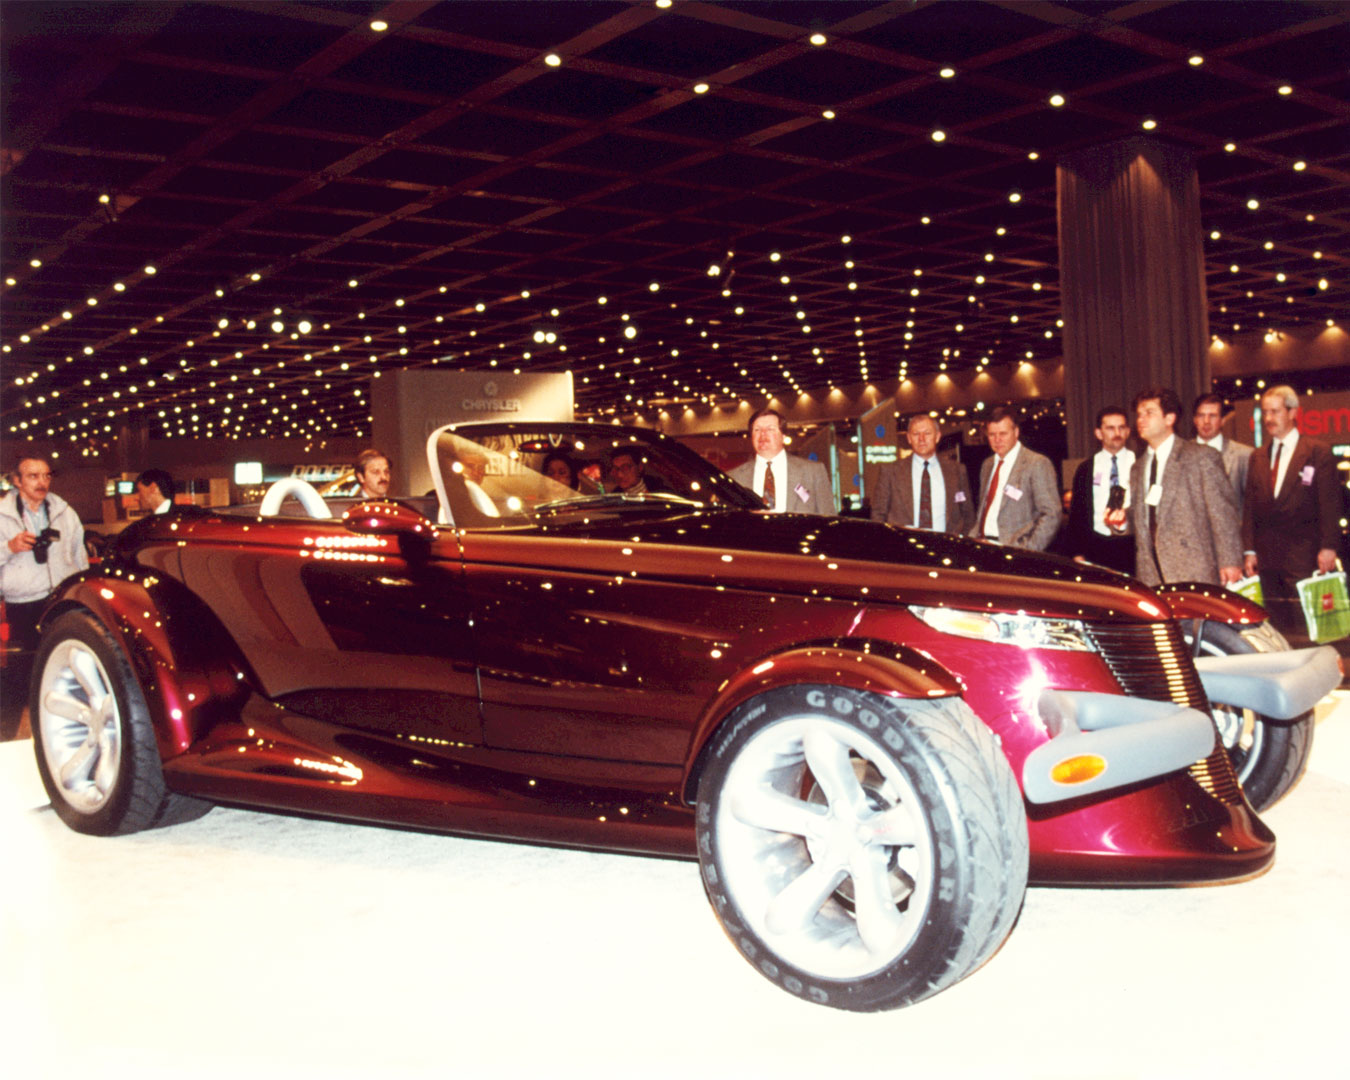 The Plymouth Prowler reveal in 1993